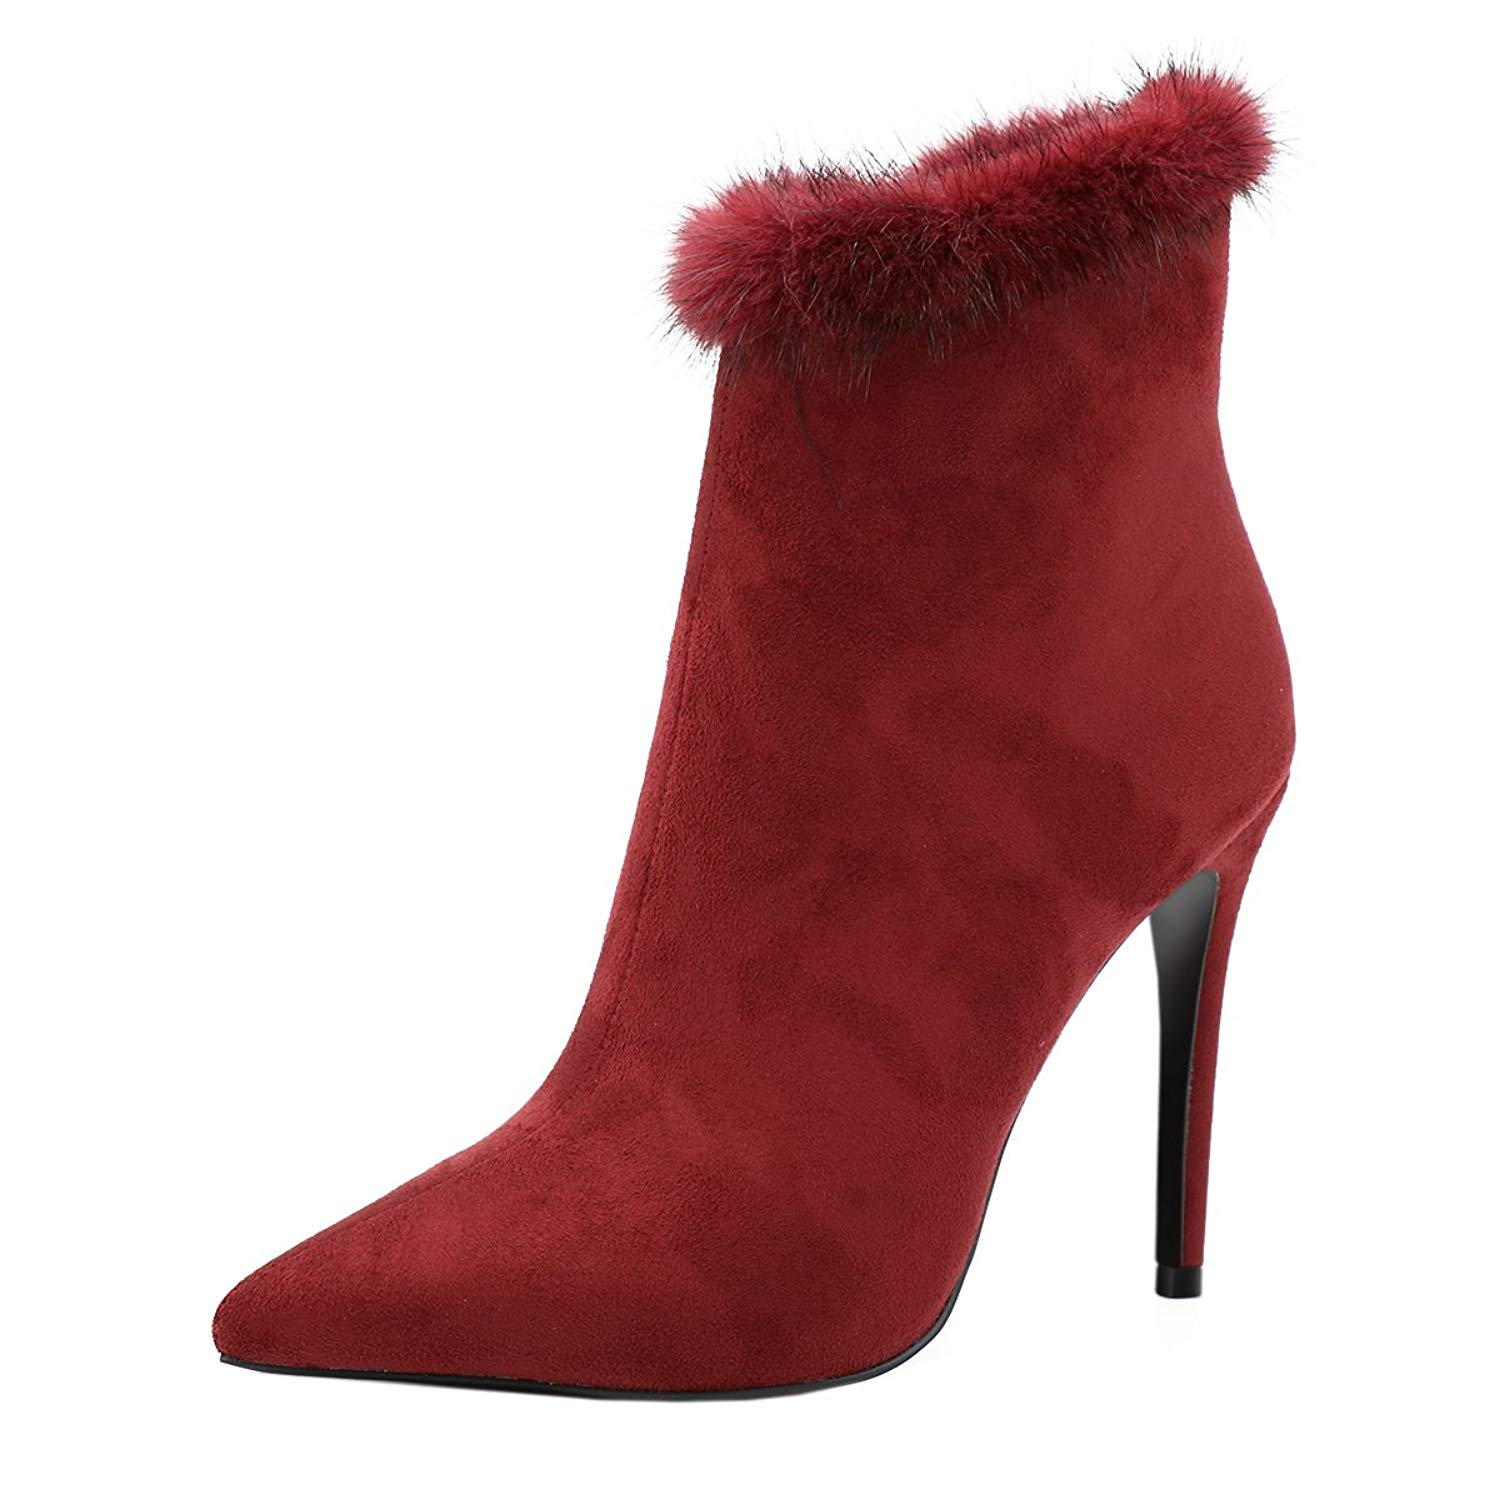 d60b4ccce10 Get Quotations · VOCOSI Women Pointed toe Faux Furry Winter Dress Ankle  Boots Stilettos Booties